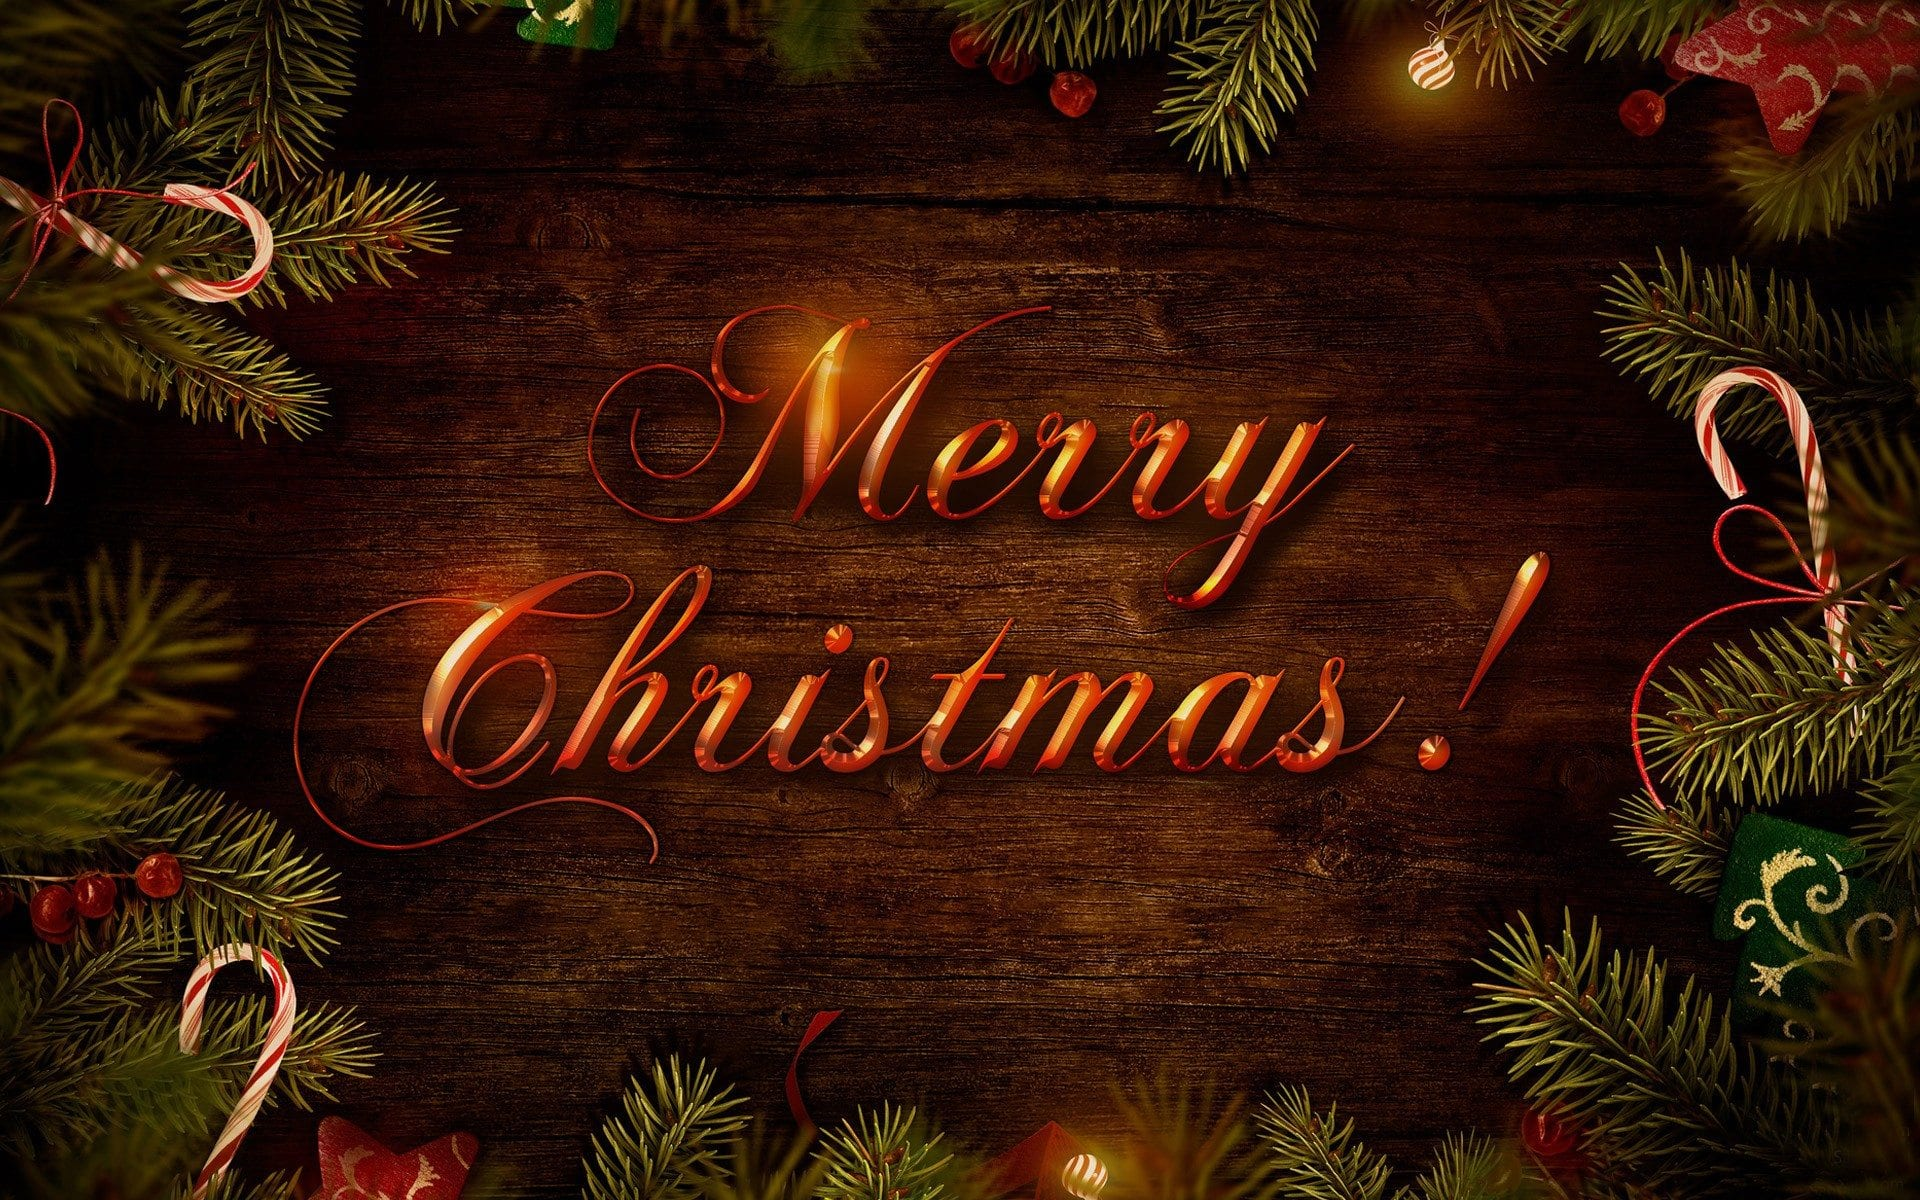 Merry-Christmas-Wallpapers-hd-2015-free-download